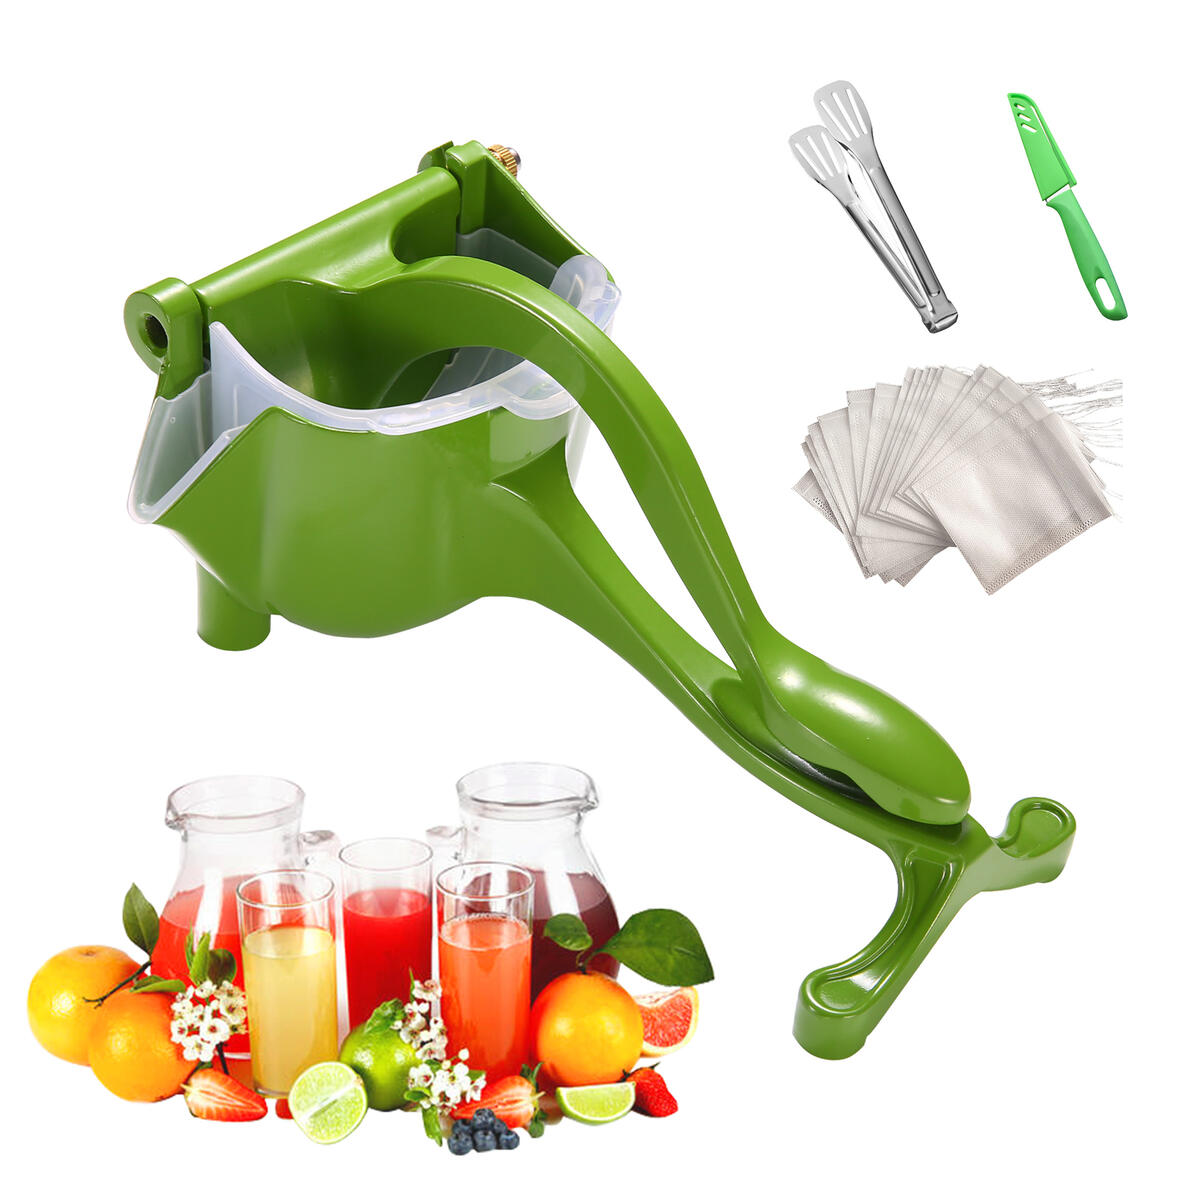 Manual Fruit Juicer,Portable Lemon Orange Citrus Pomegranate Hand Press,Handheld Large Capacity Nuts Lime Squeezer,Detachable Corrosion Protection Extractor Tool,Family Kitchen Gadget (Vibrant Green)